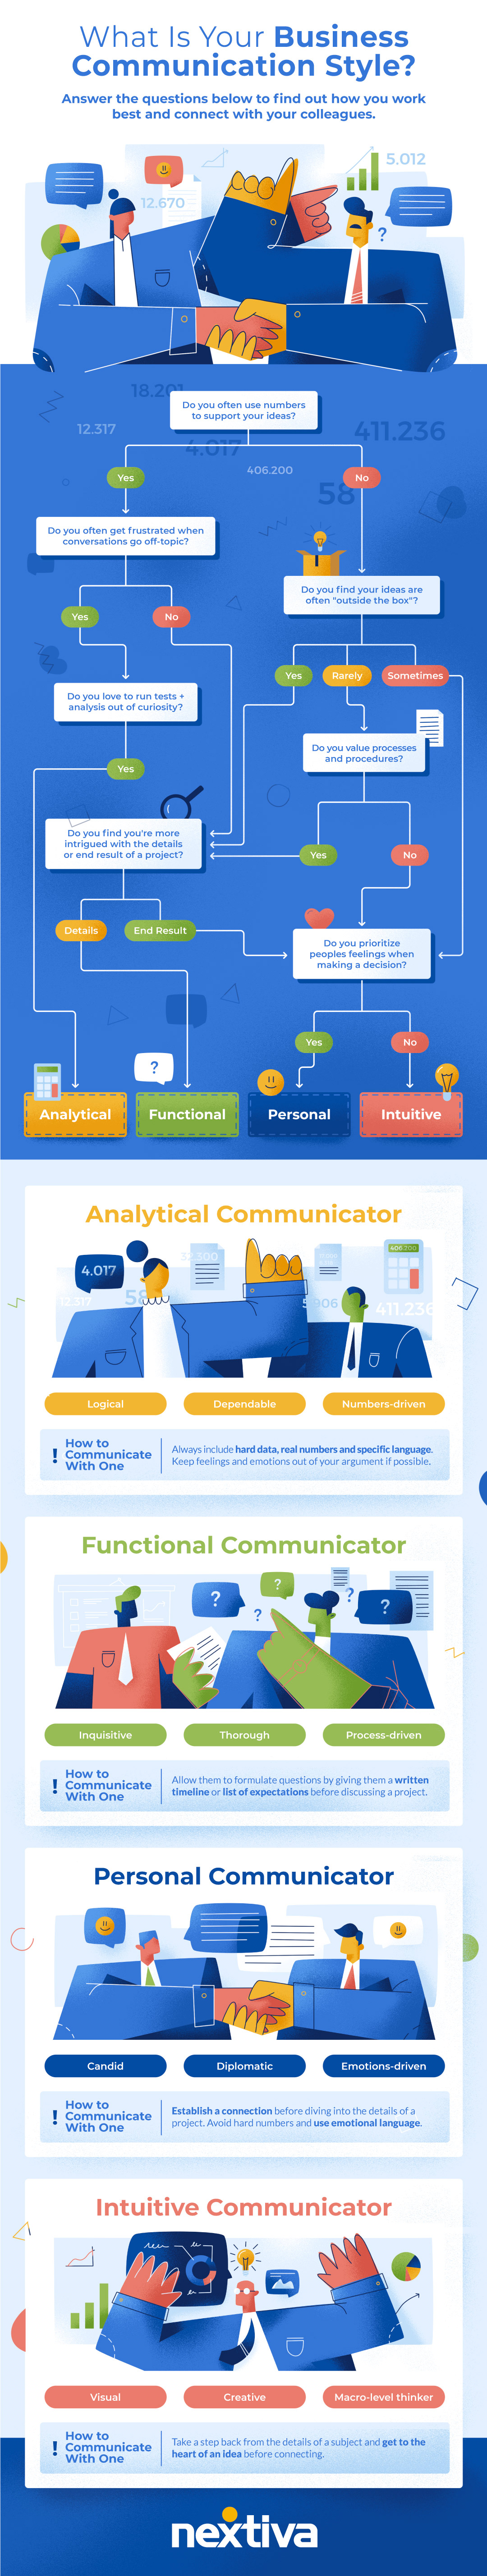 infographic that explores the different kinds of business communication styles